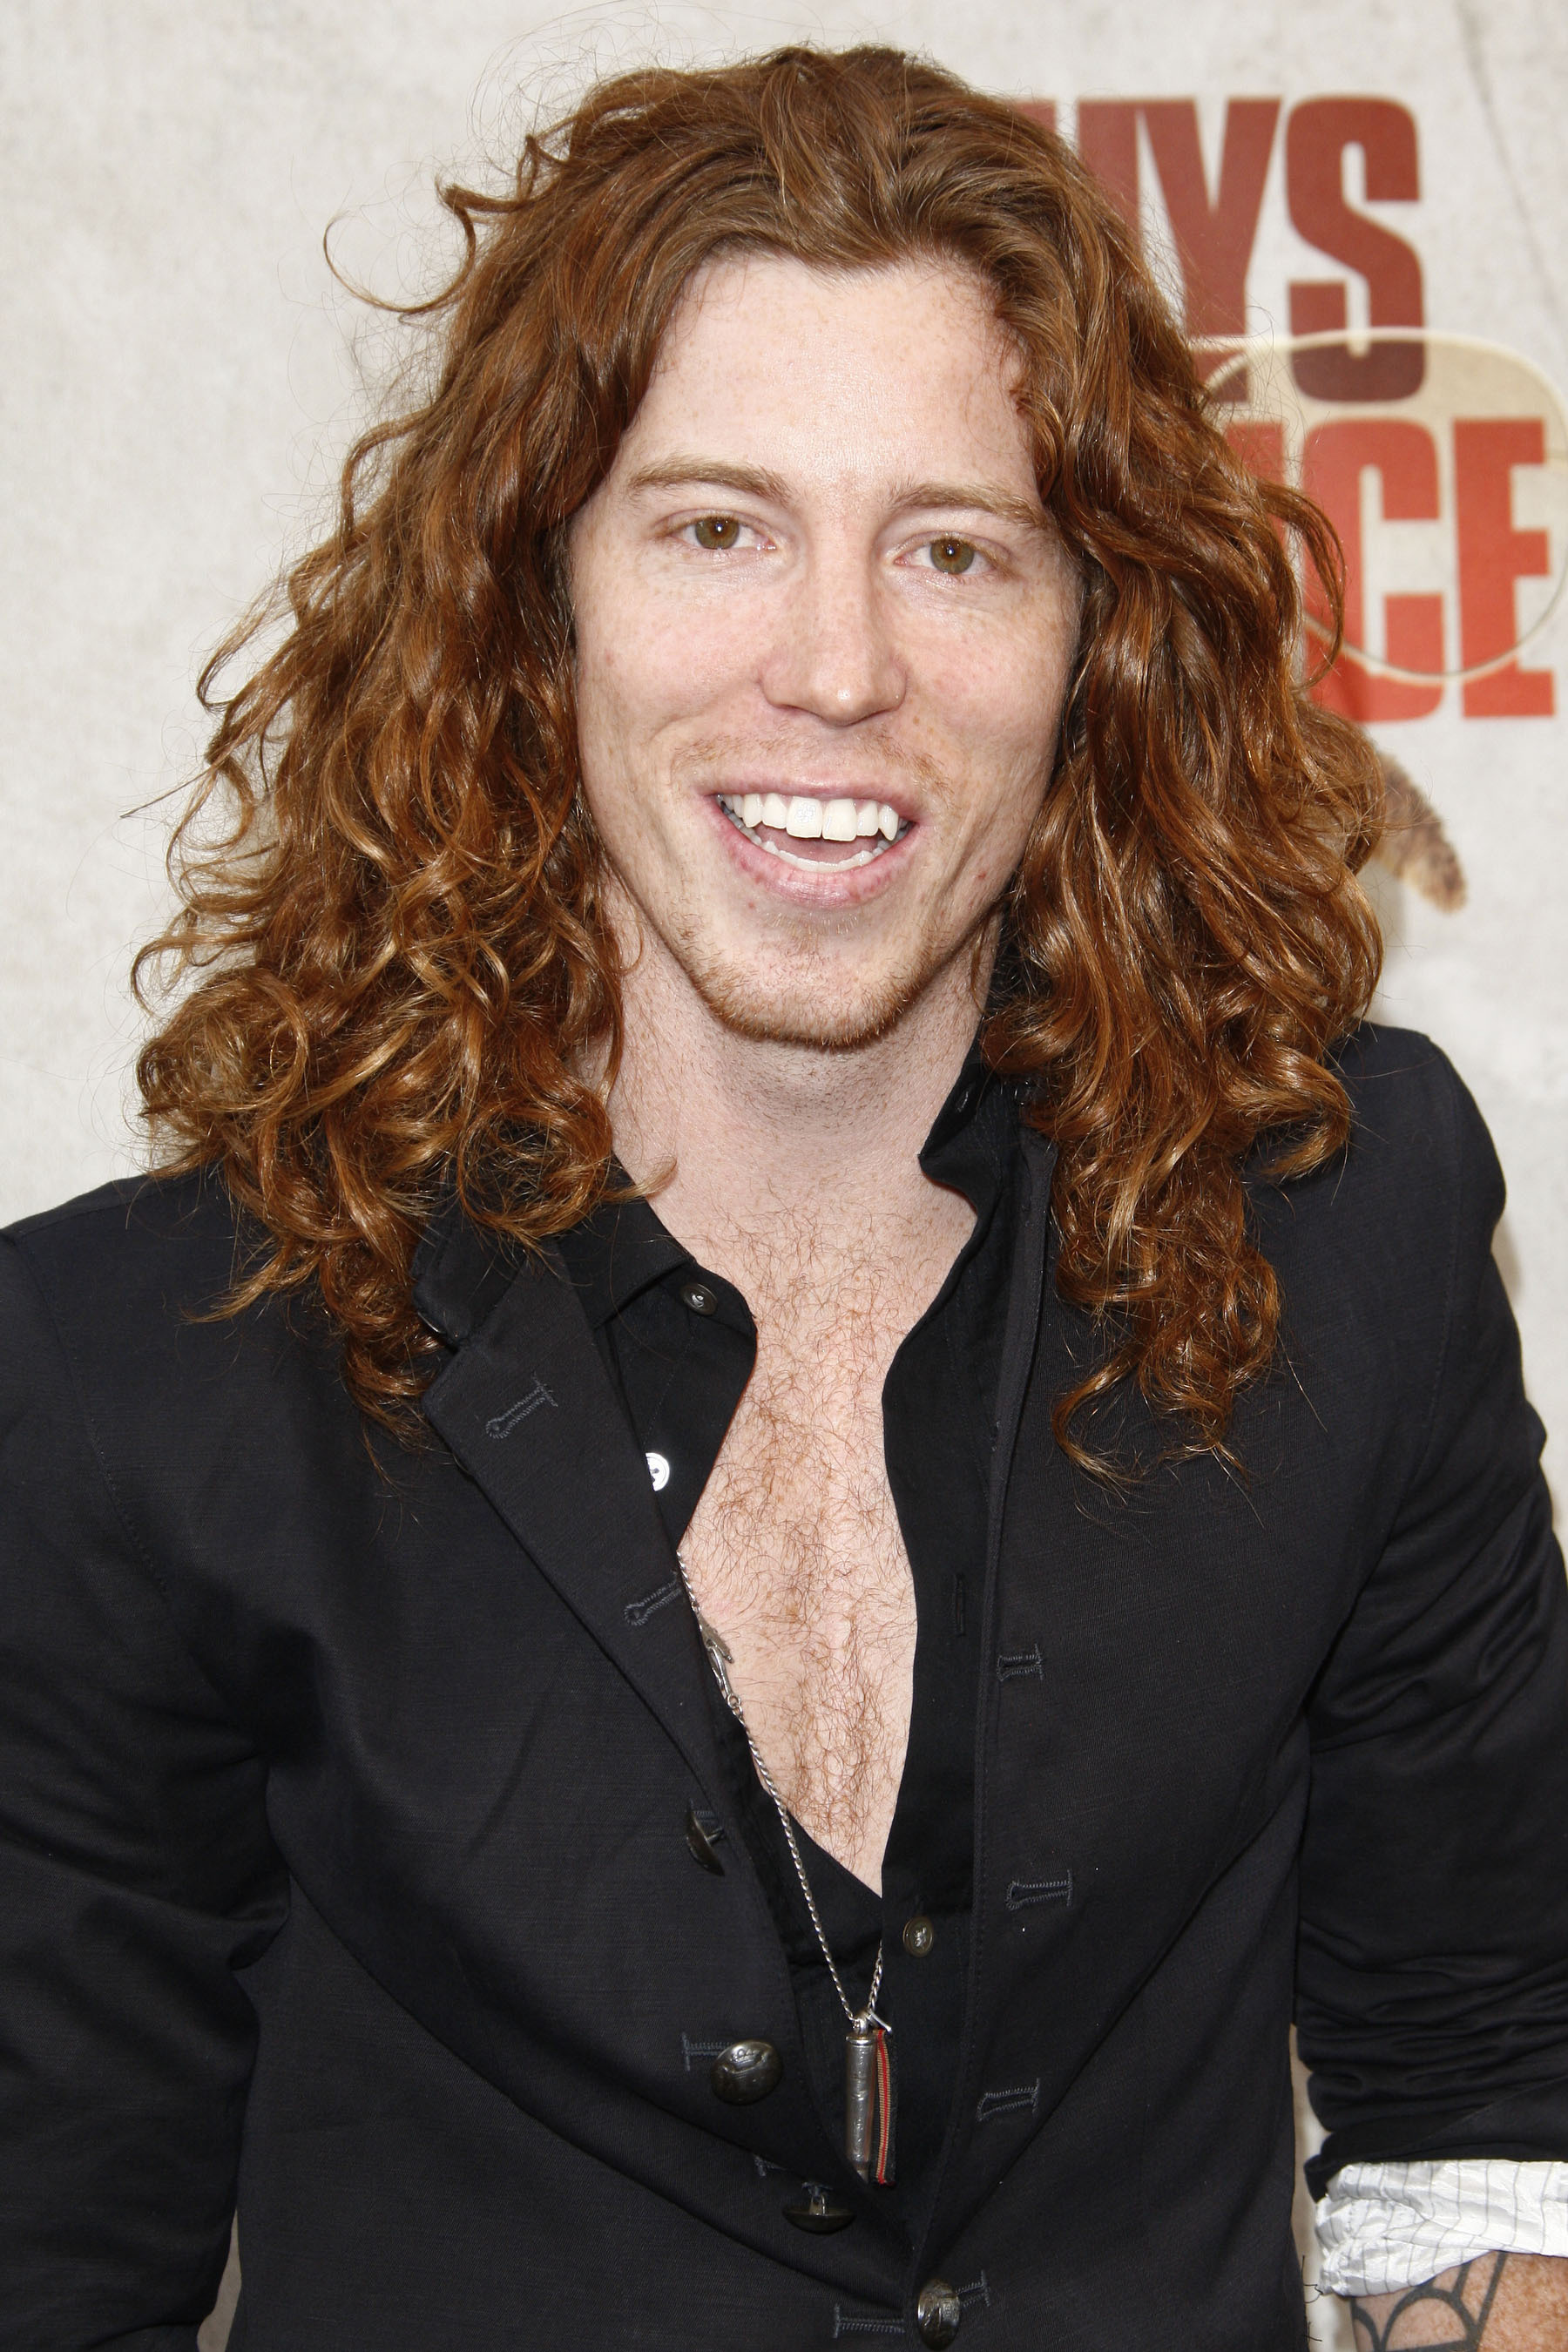 Shaun White is allegedly nasty AF.